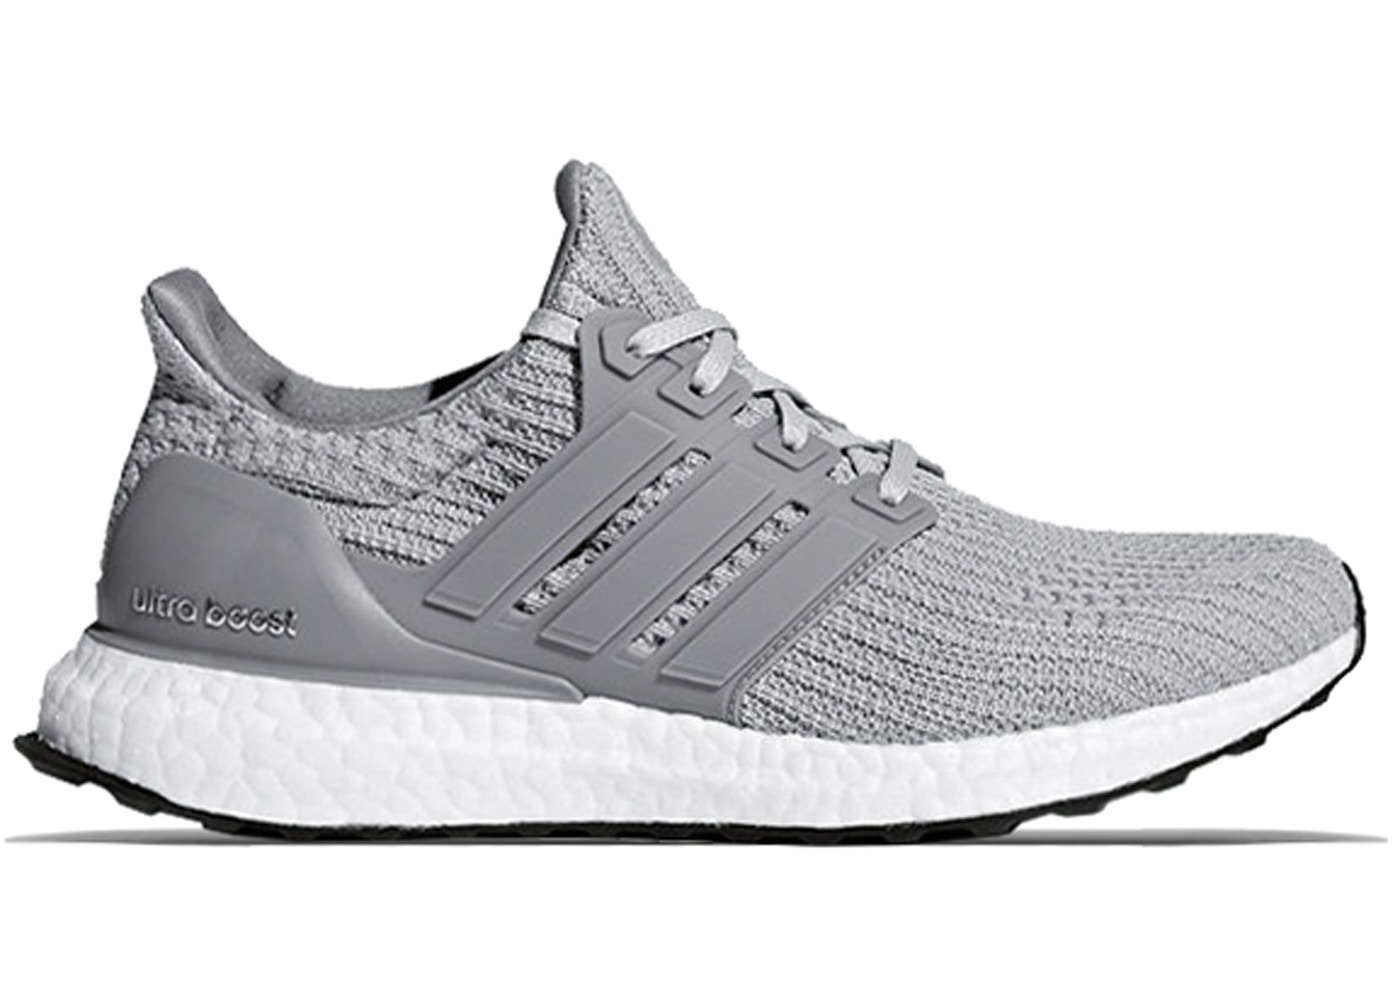 56d5281e96a adidas Ultra Boost Shoes - New Lowest Asks